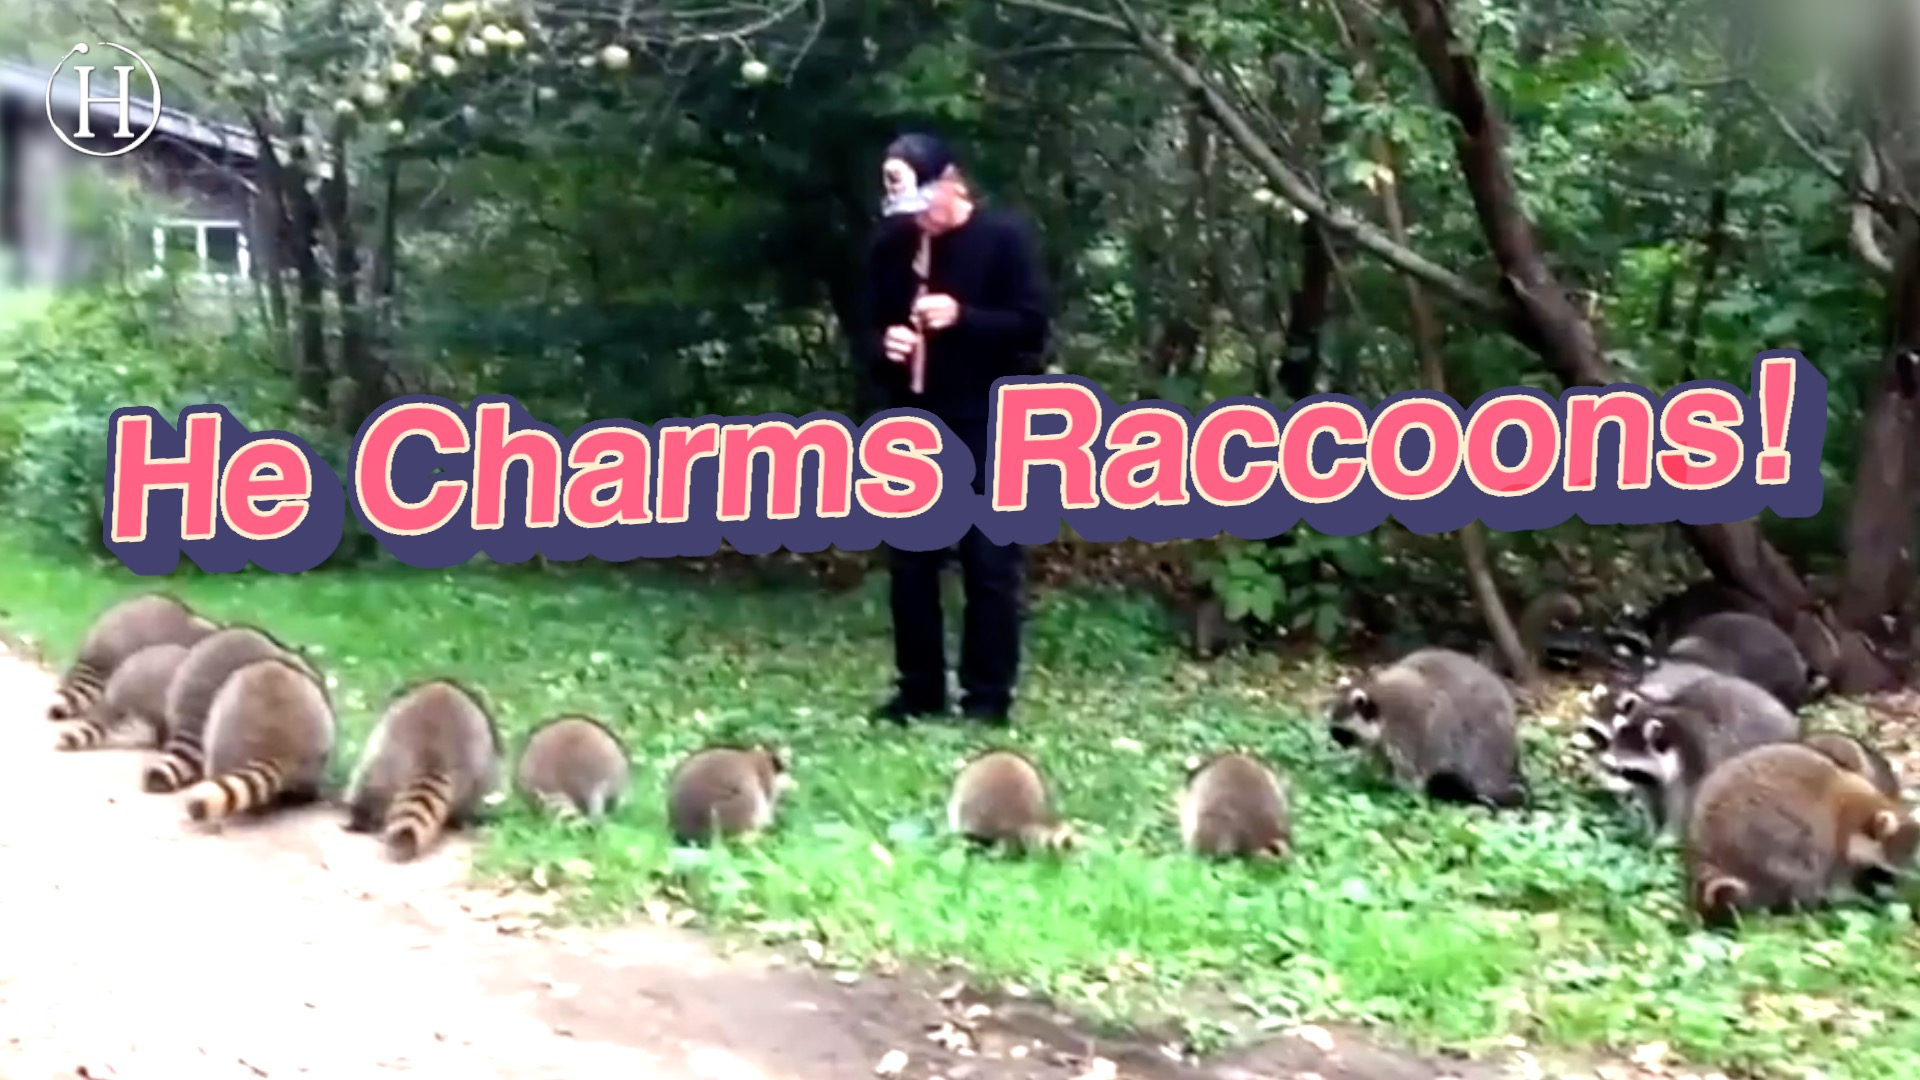 This Man Is the Pied Piper of Raccoons | Humanity Life